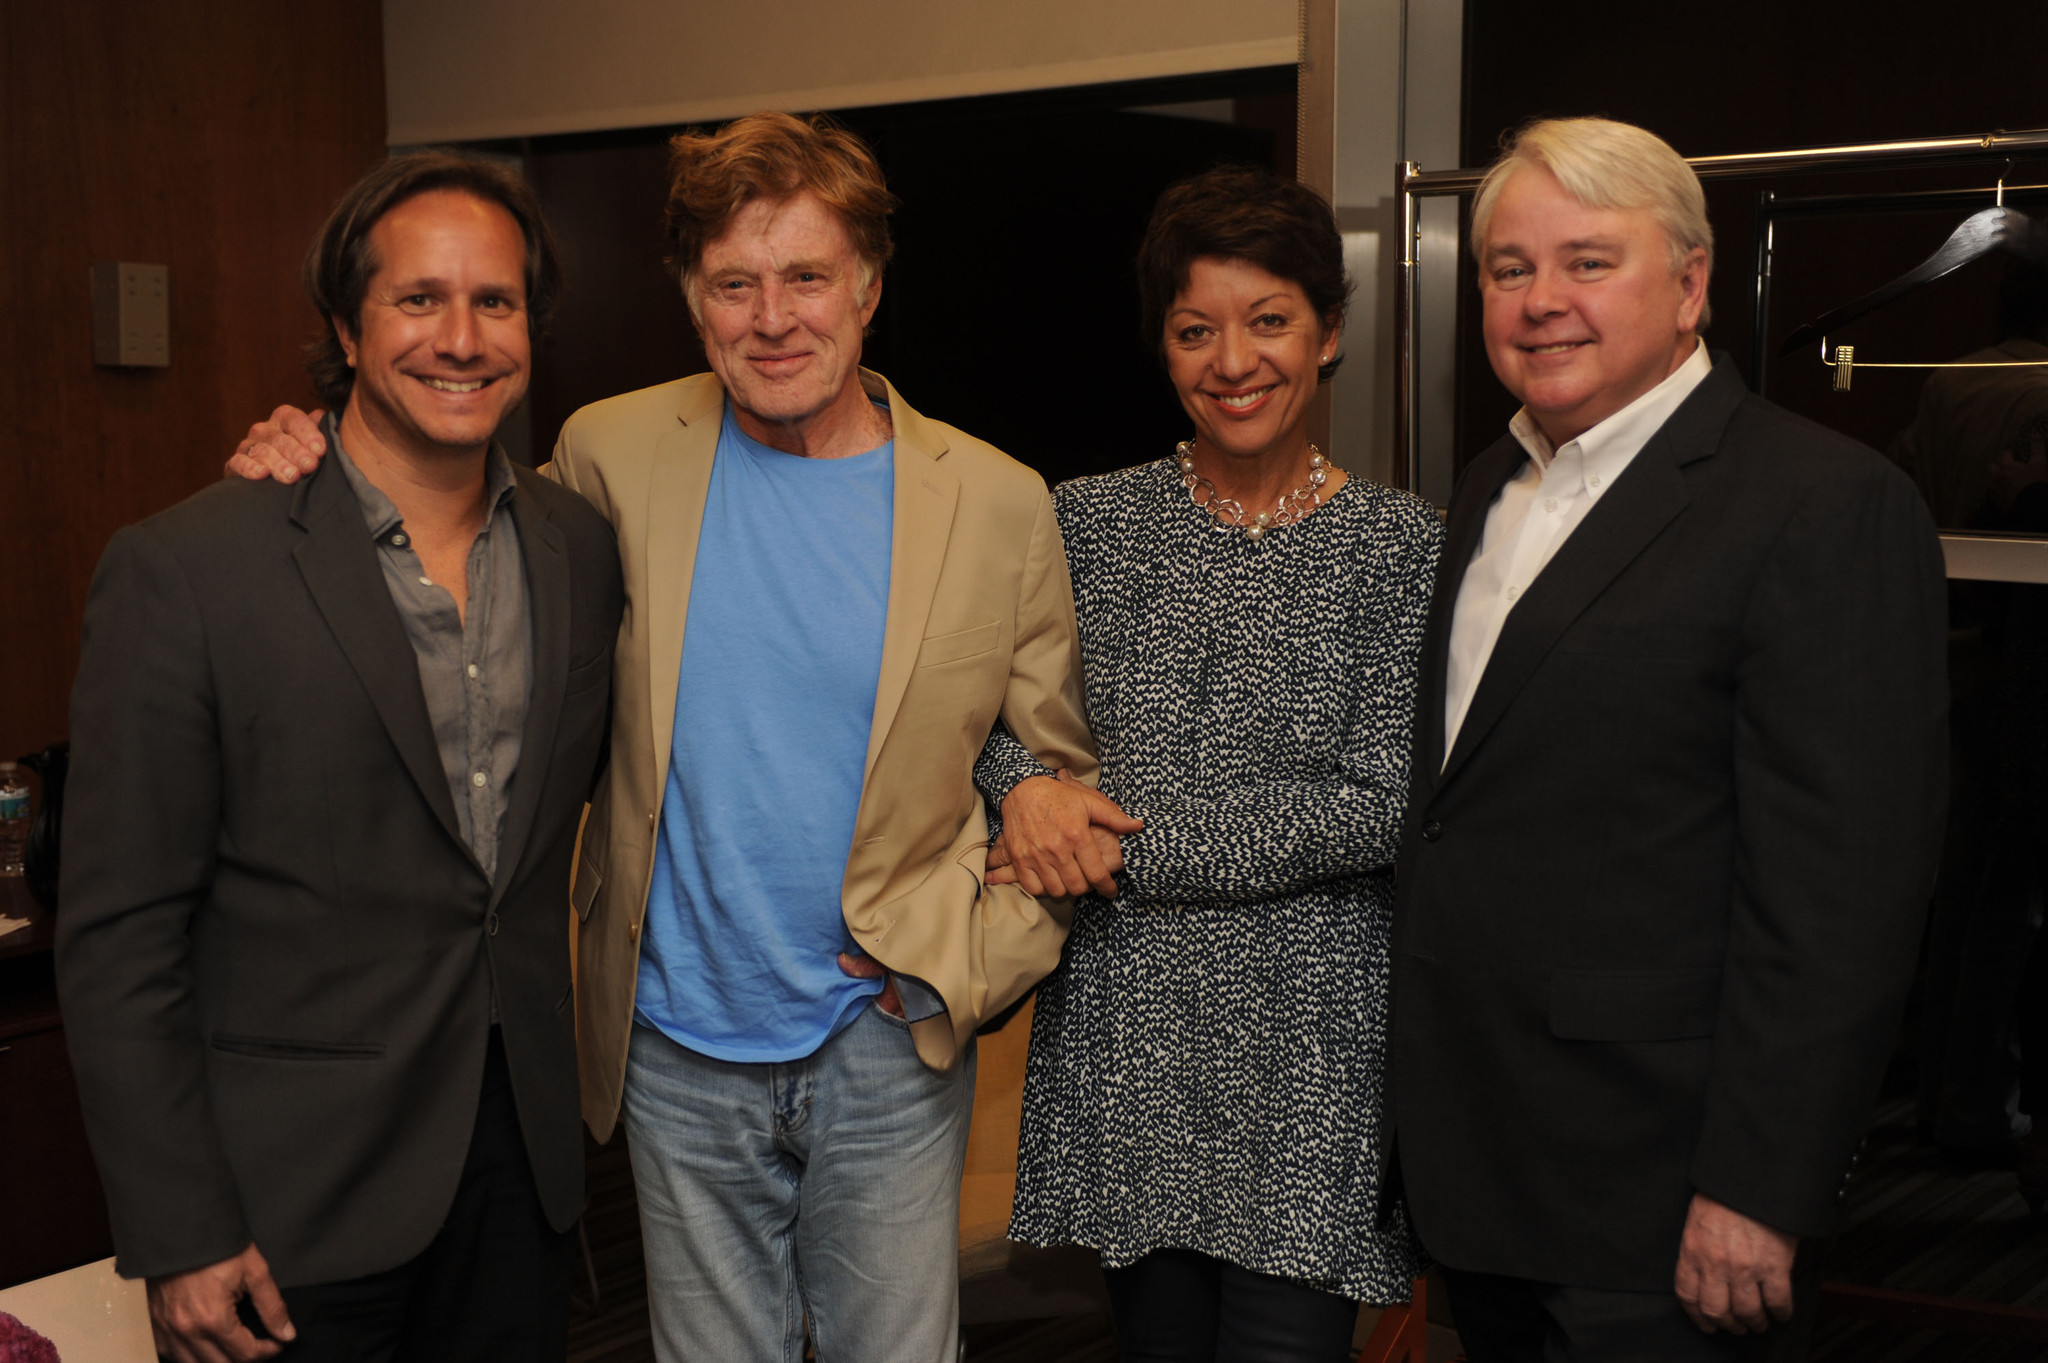 Celeb-spotting around South Florida - Robert Redford